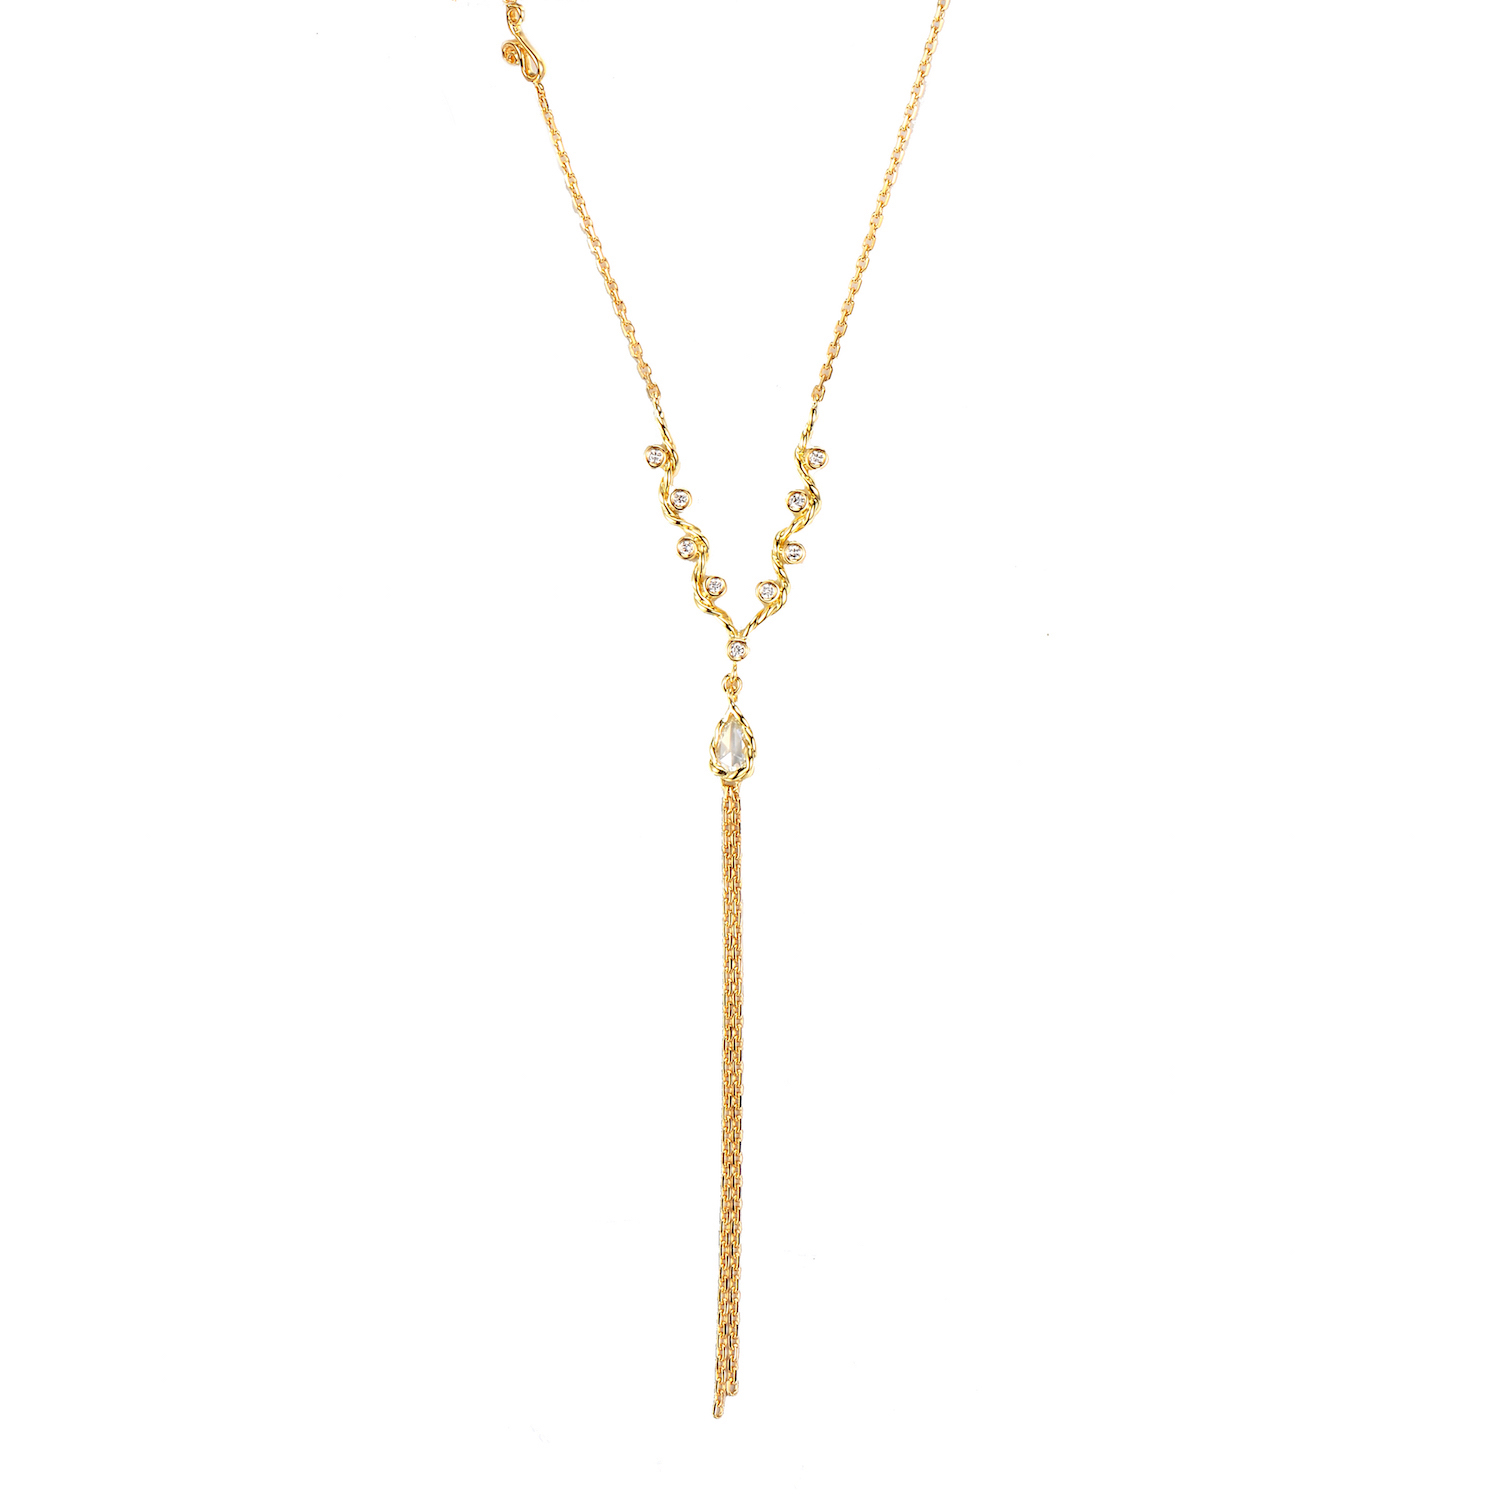 75-Pear-Rose-Cut-Diamond-Drop-Chain-Tassel-Wavy-Twist-Triangle-Pendant-Y-Necklace-18k-gold-JeweLyrie_ALGY-05